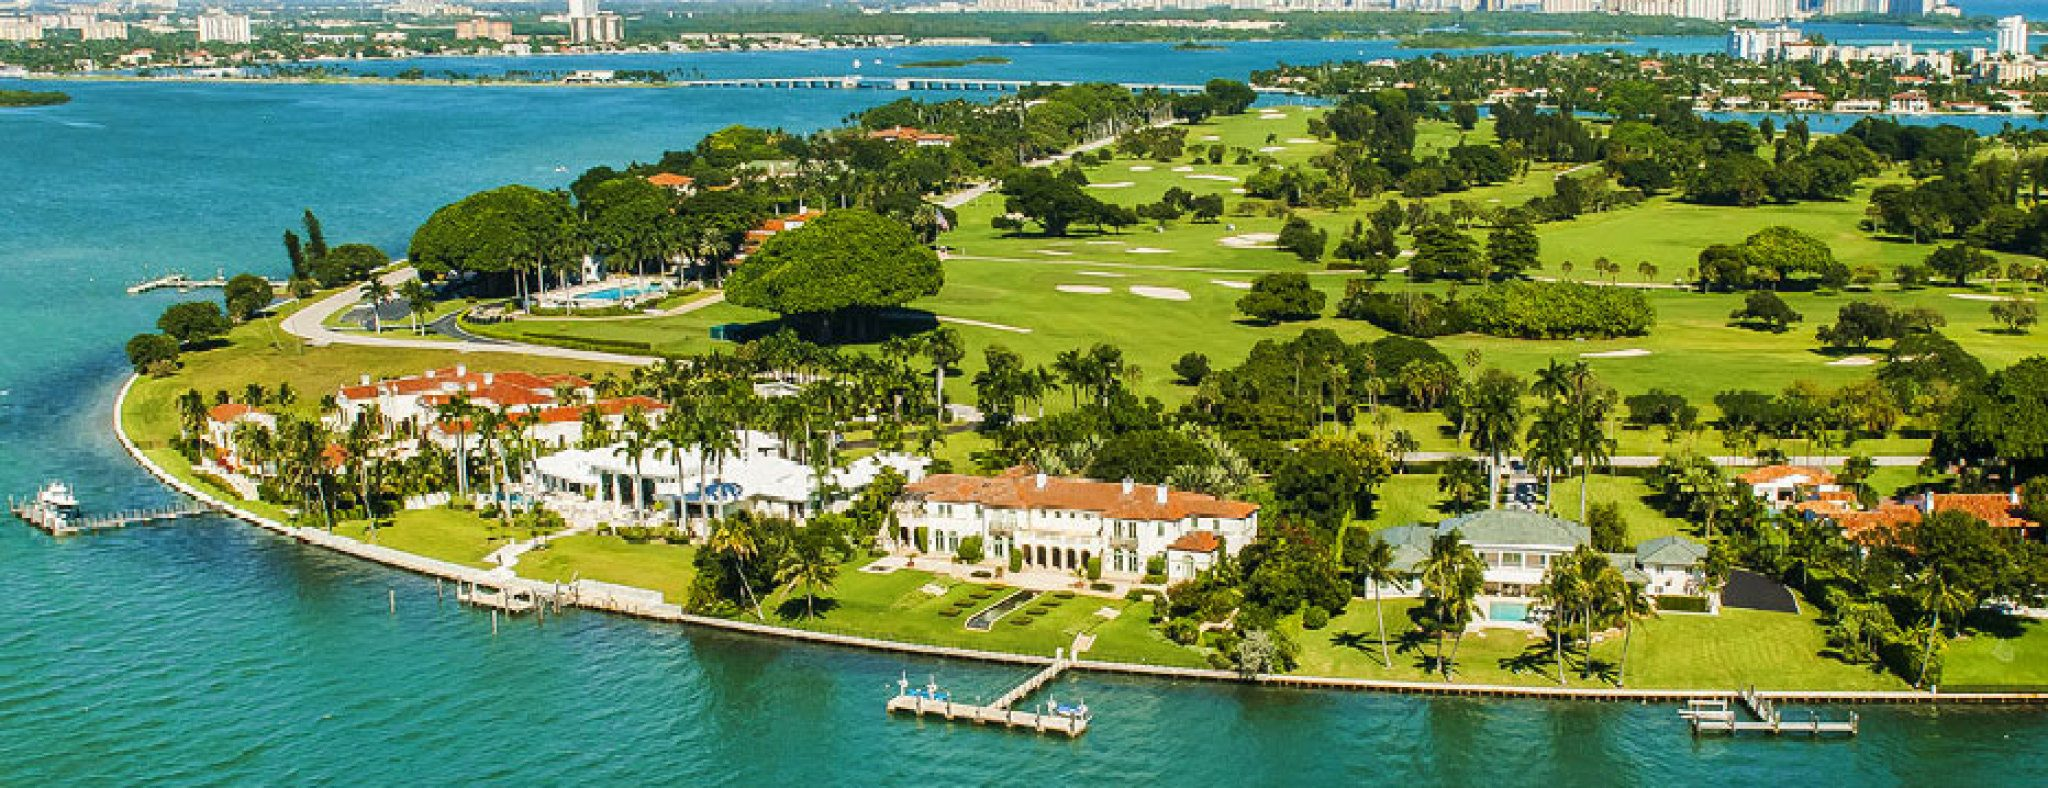 Featured Community - The Estates on Indian Creek Island, Star Island and Palm Island are Prized Waterfront Retreats, Minutes from Miami.